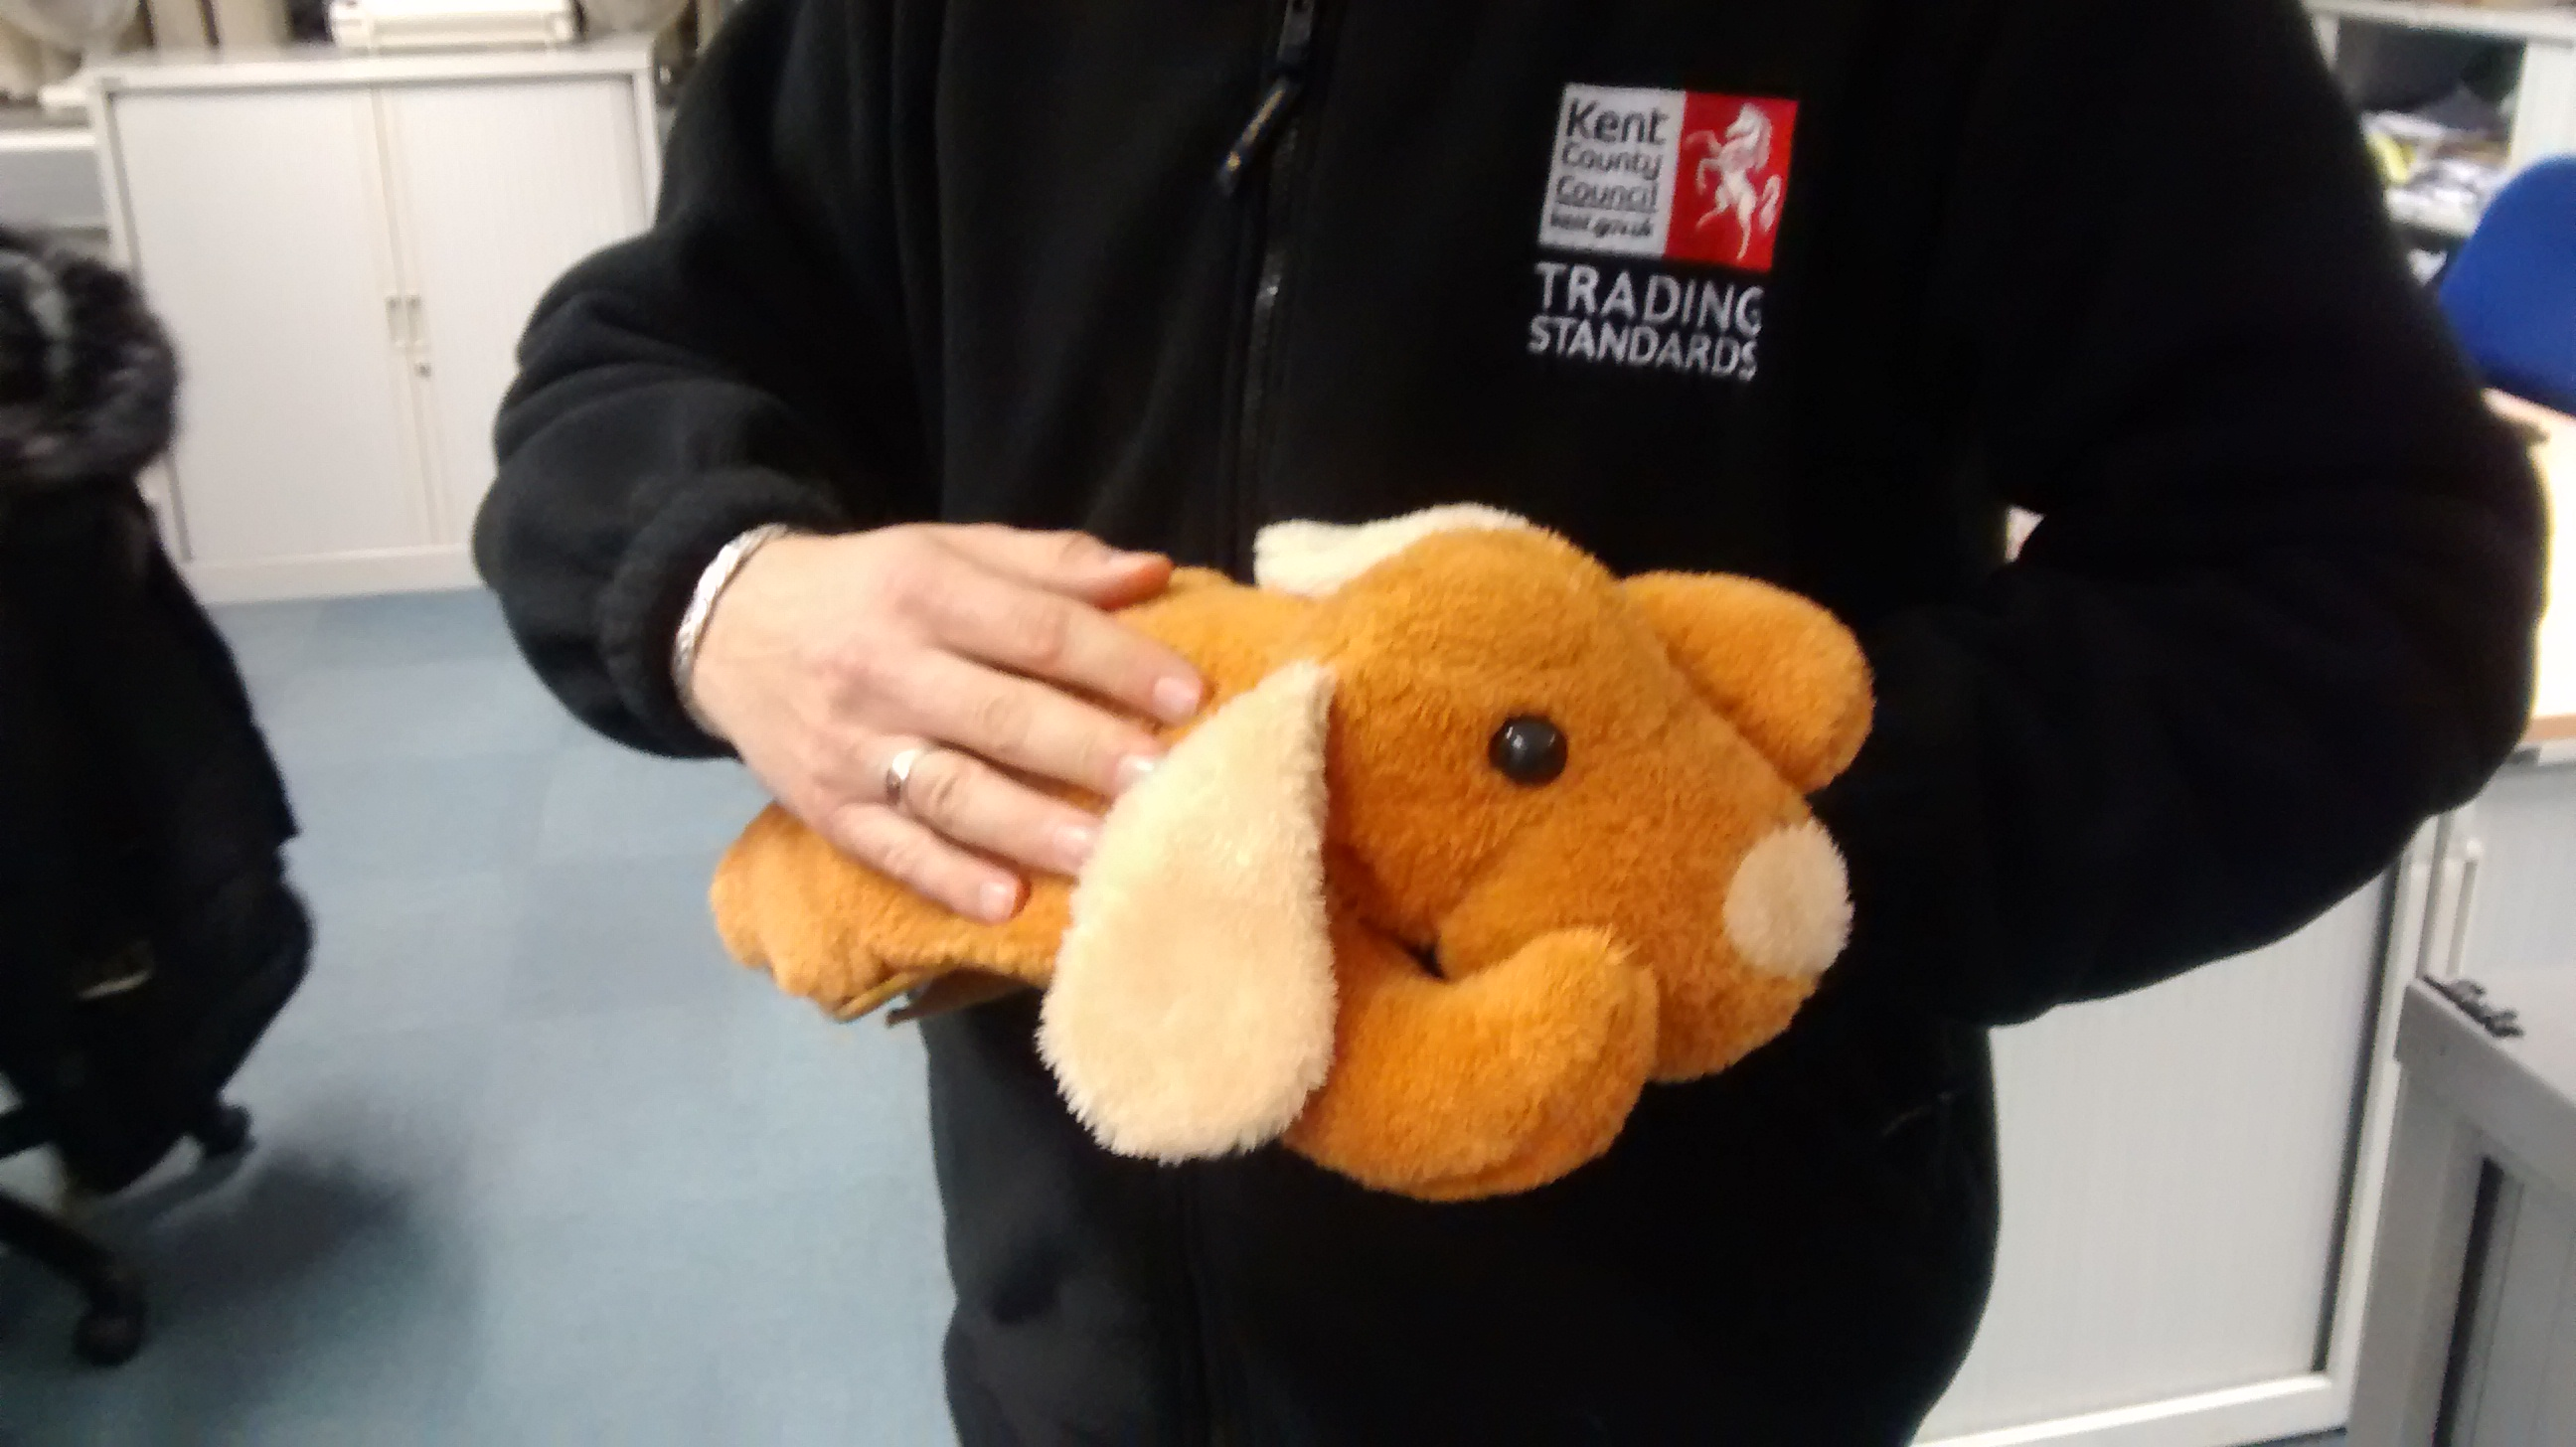 Lethal hot water bottles seized by Trading Standards